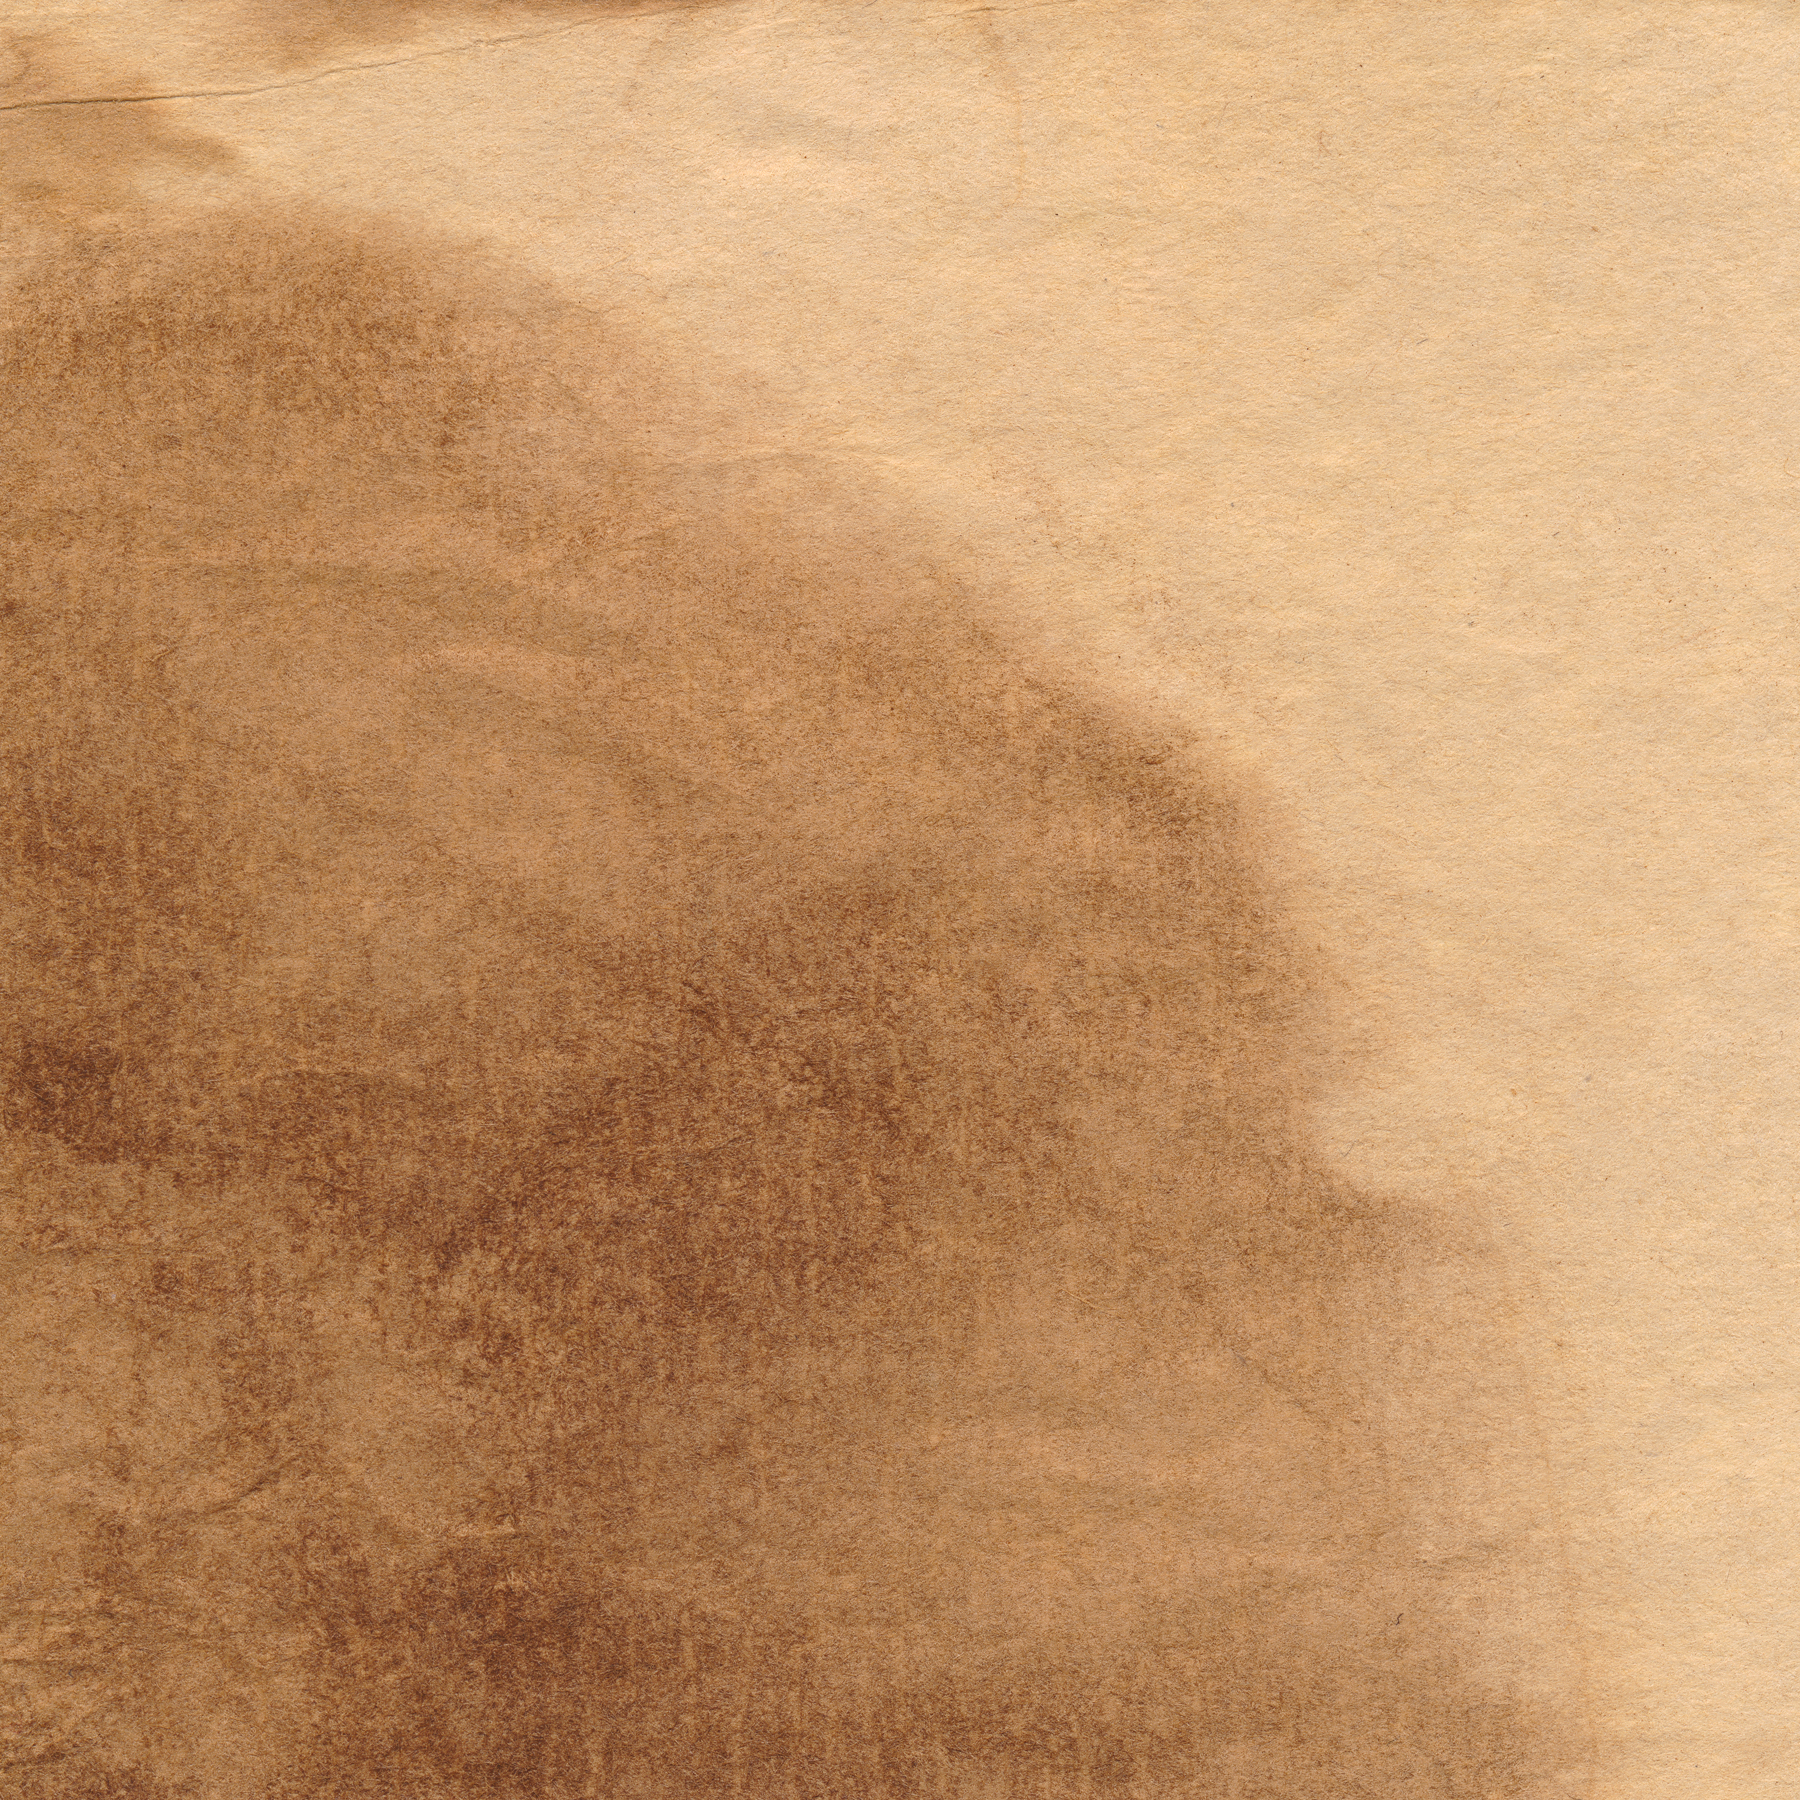 Coffee Stained Paper Texture, Abstract, Sepia, Space, Soiled, HQ Photo